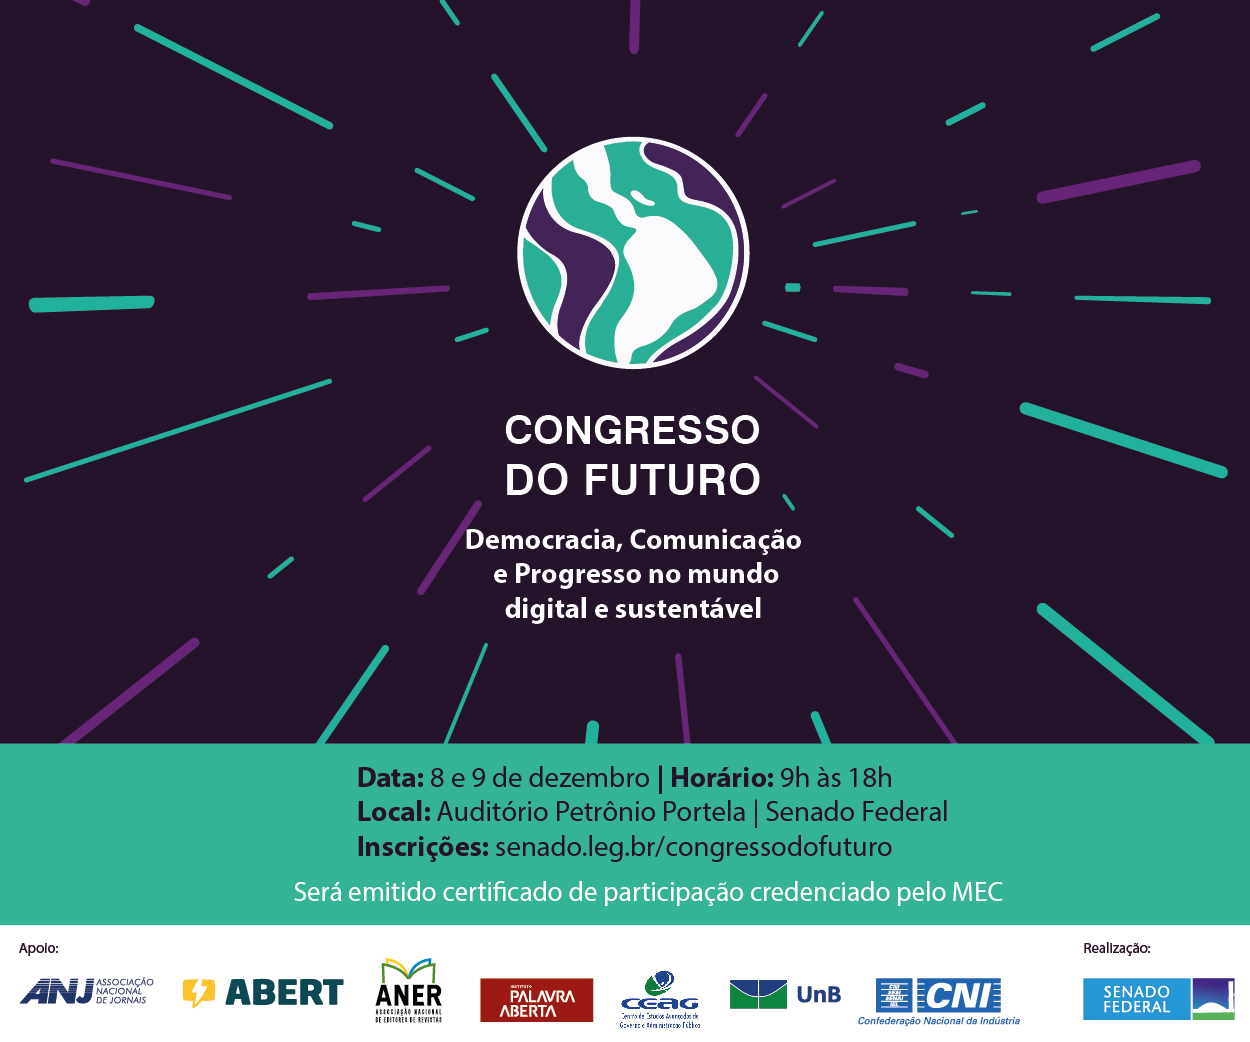 congresso-do-futuro-banner300x250